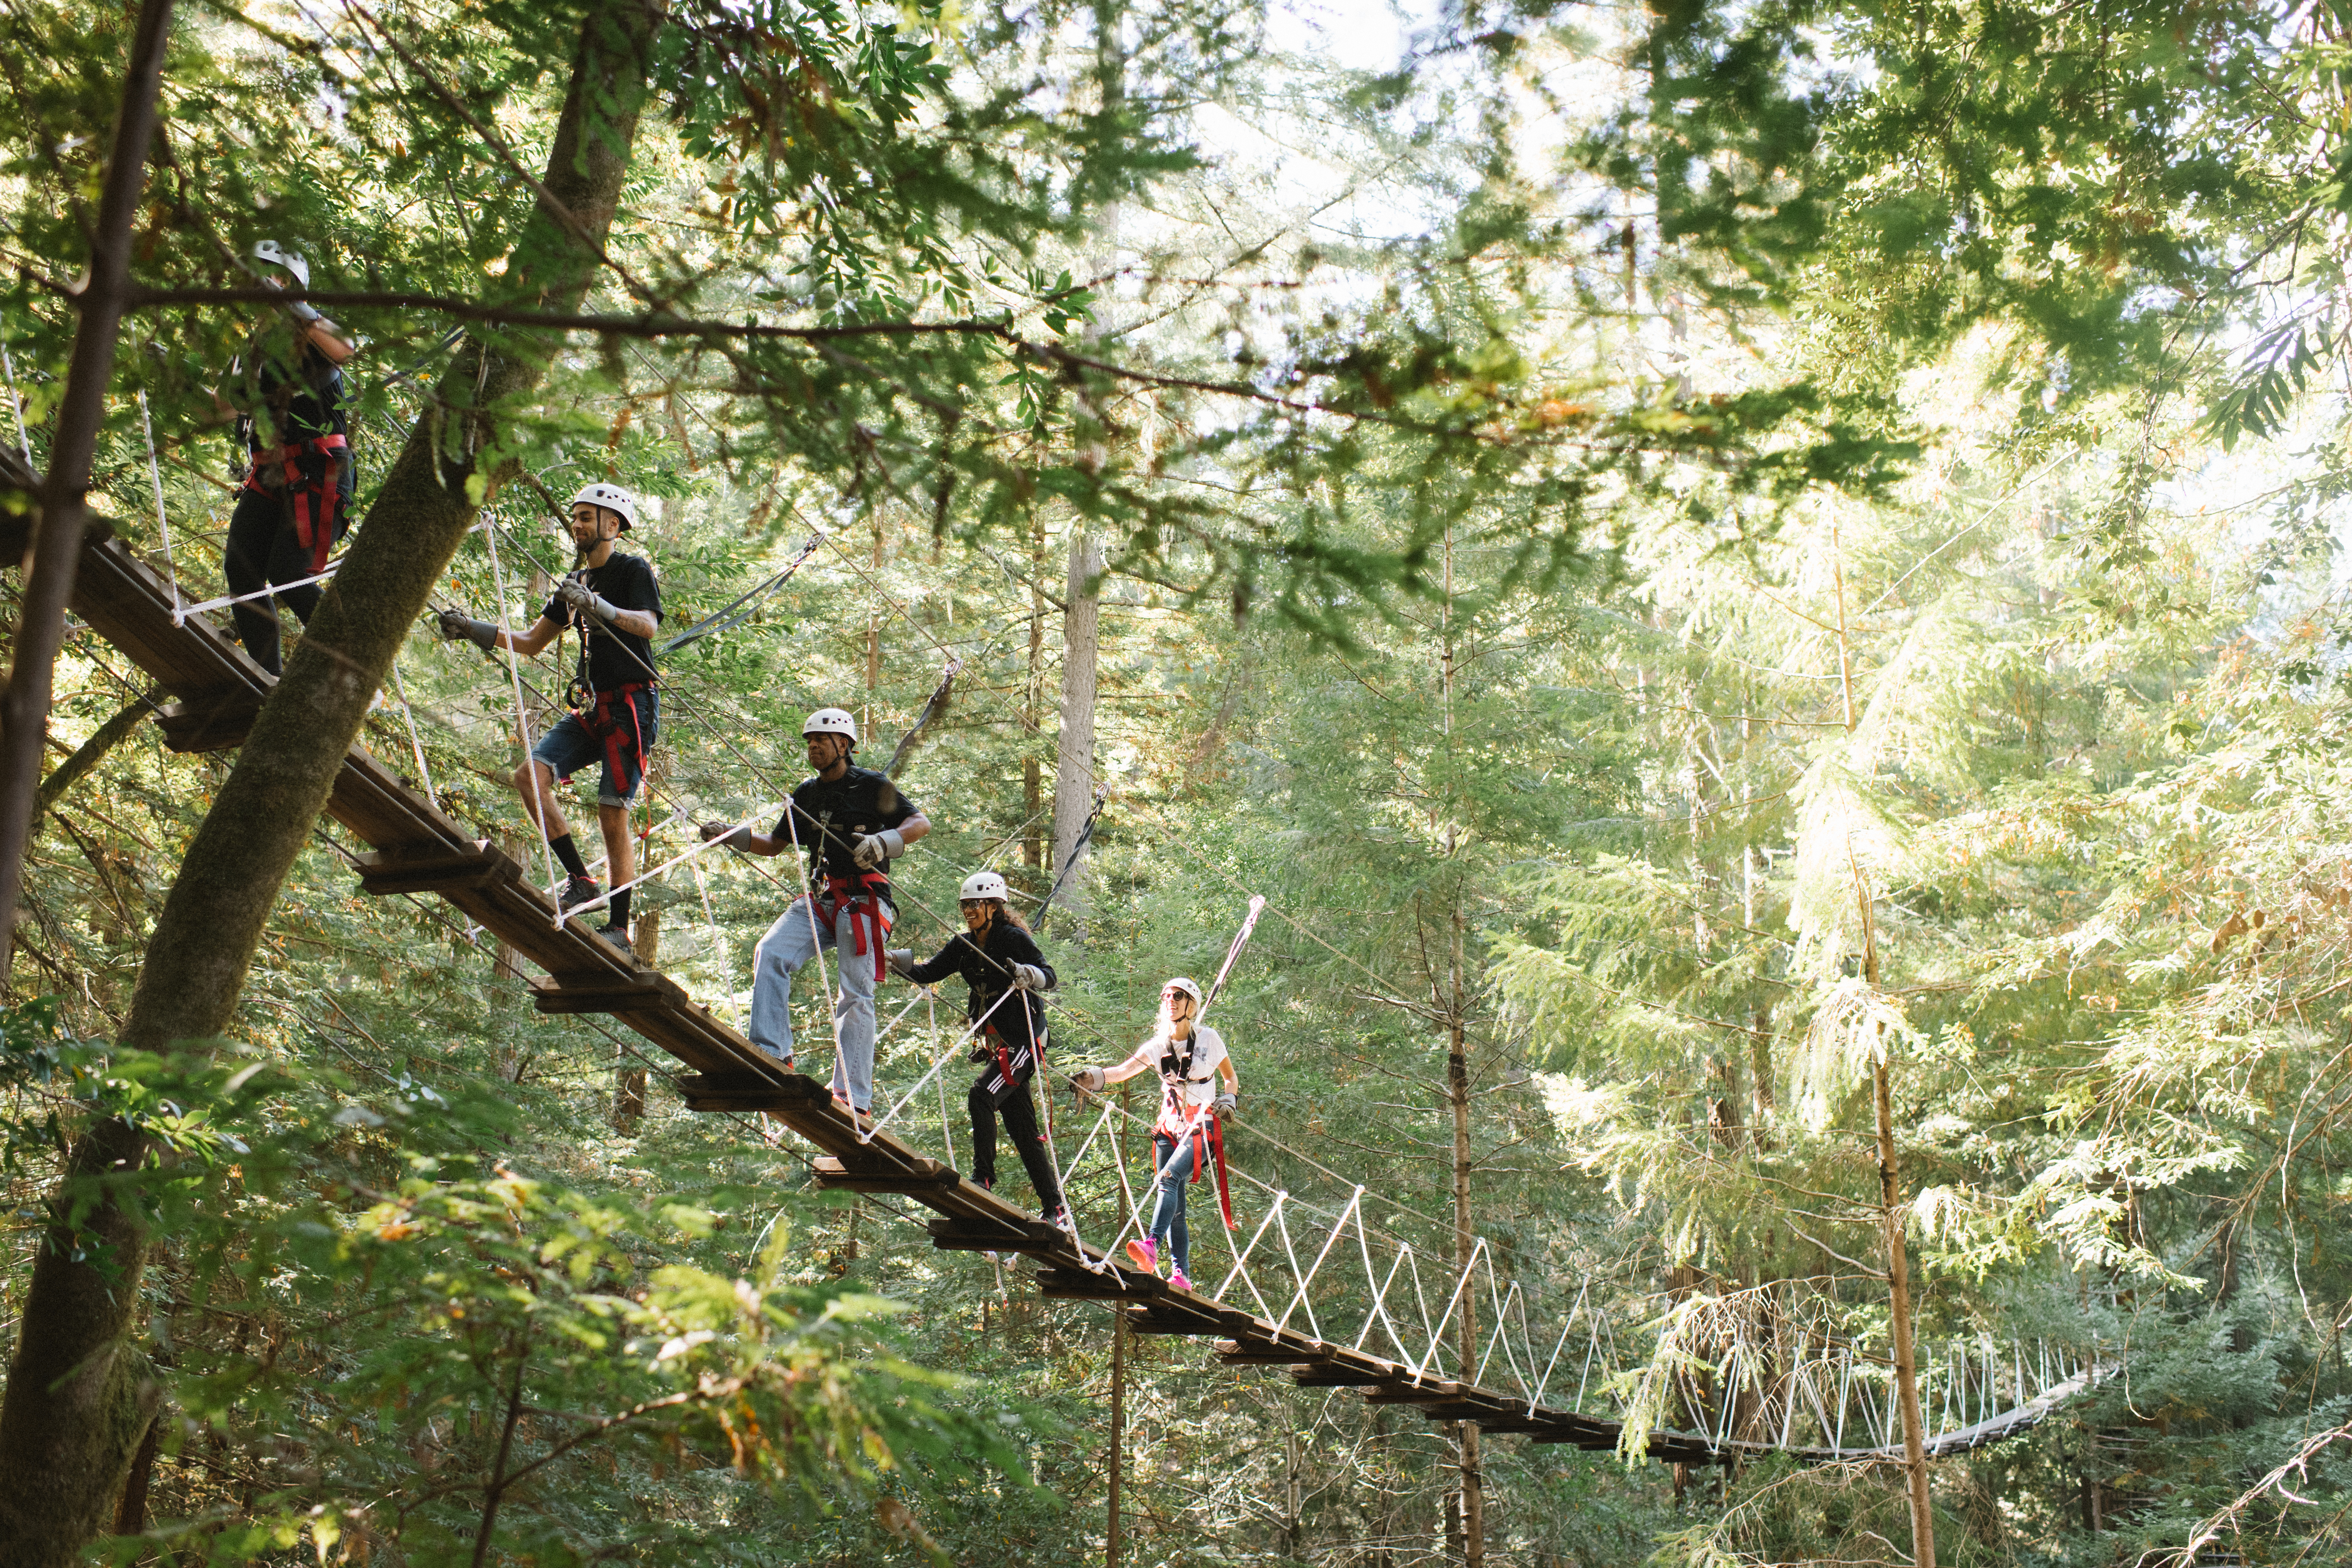 Go ziplining in the Sonoma County redwoods with Sonoma Canopy Tours near Armstrong Redwoods, Guerneville, Sonoma County, California